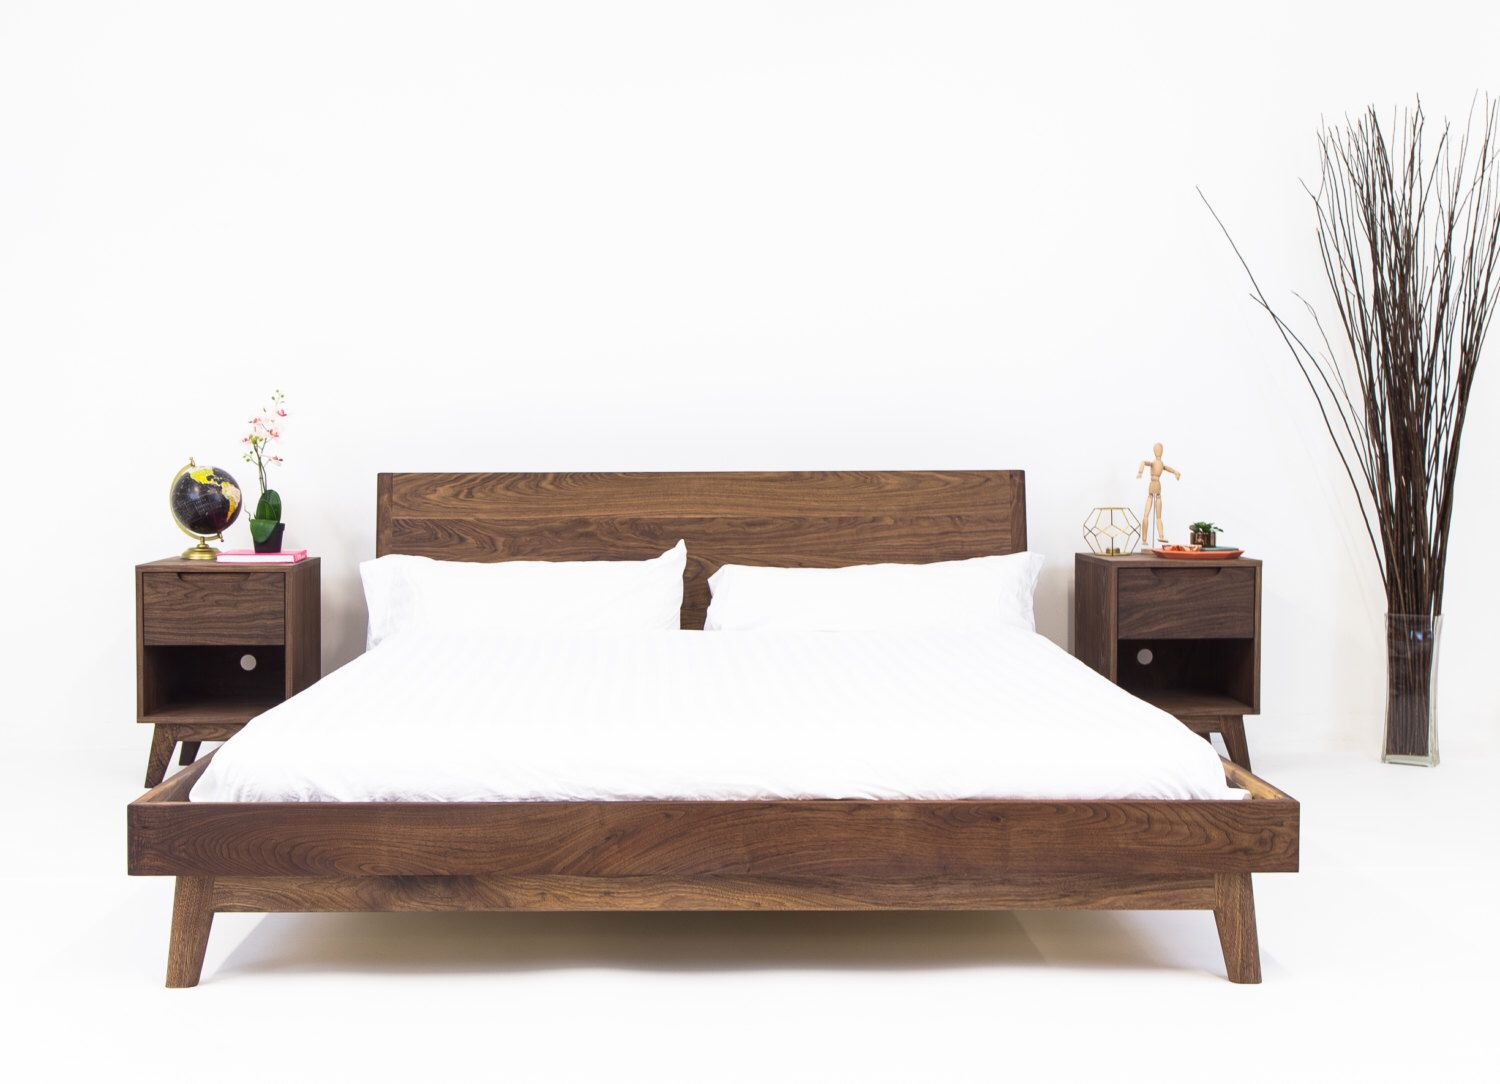 The Bosco Modern Bed Walnut Bed Midcentury Modern Bed King Size Bed Modern Bed Modern Wooden Bed Mid Century Modern Bed